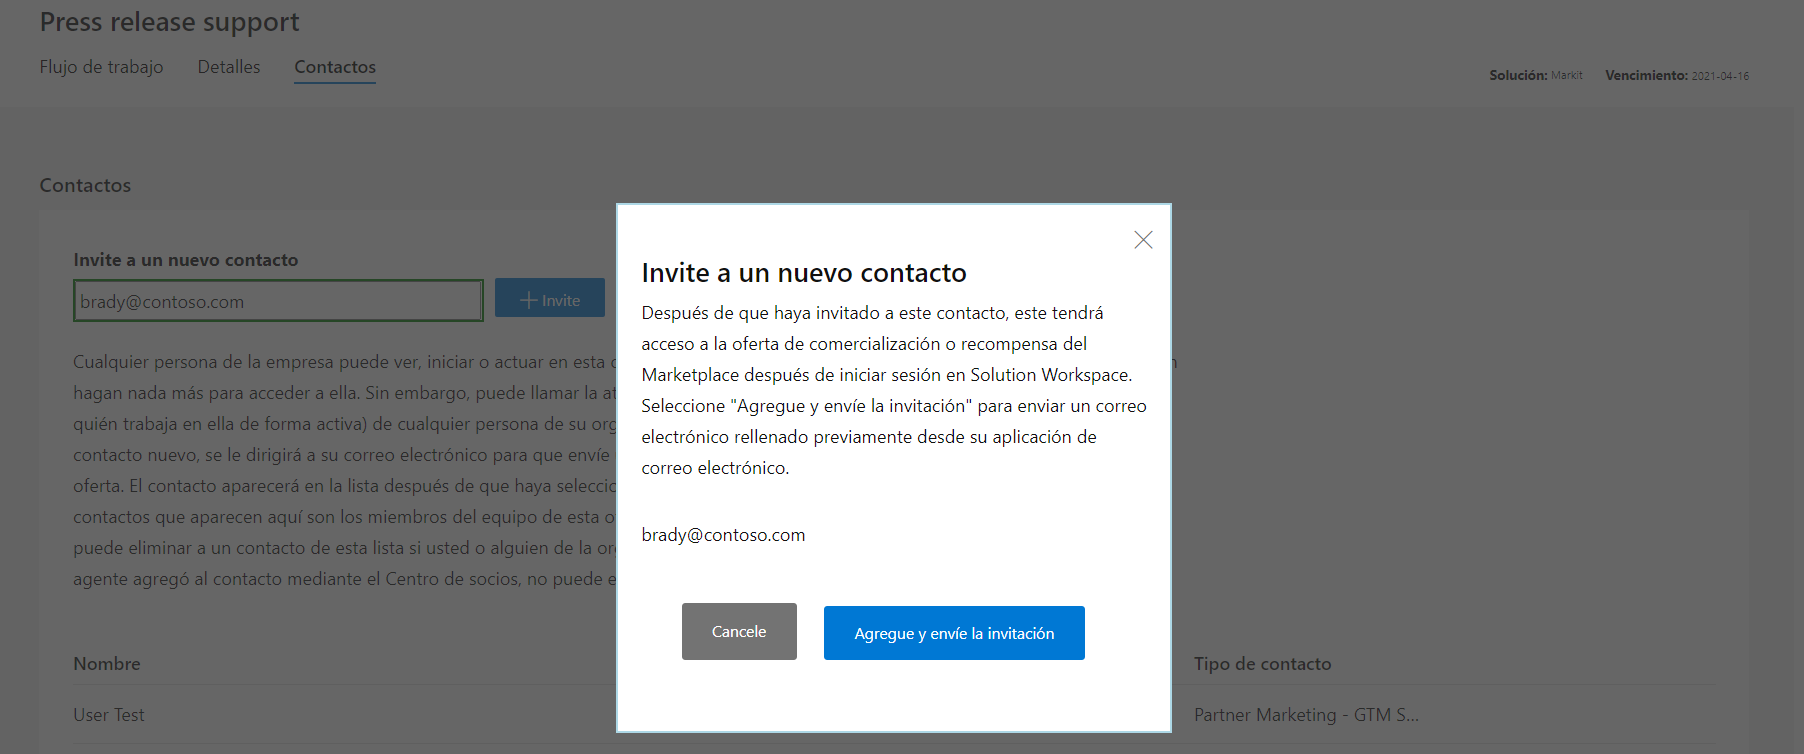 Image of invite new contact